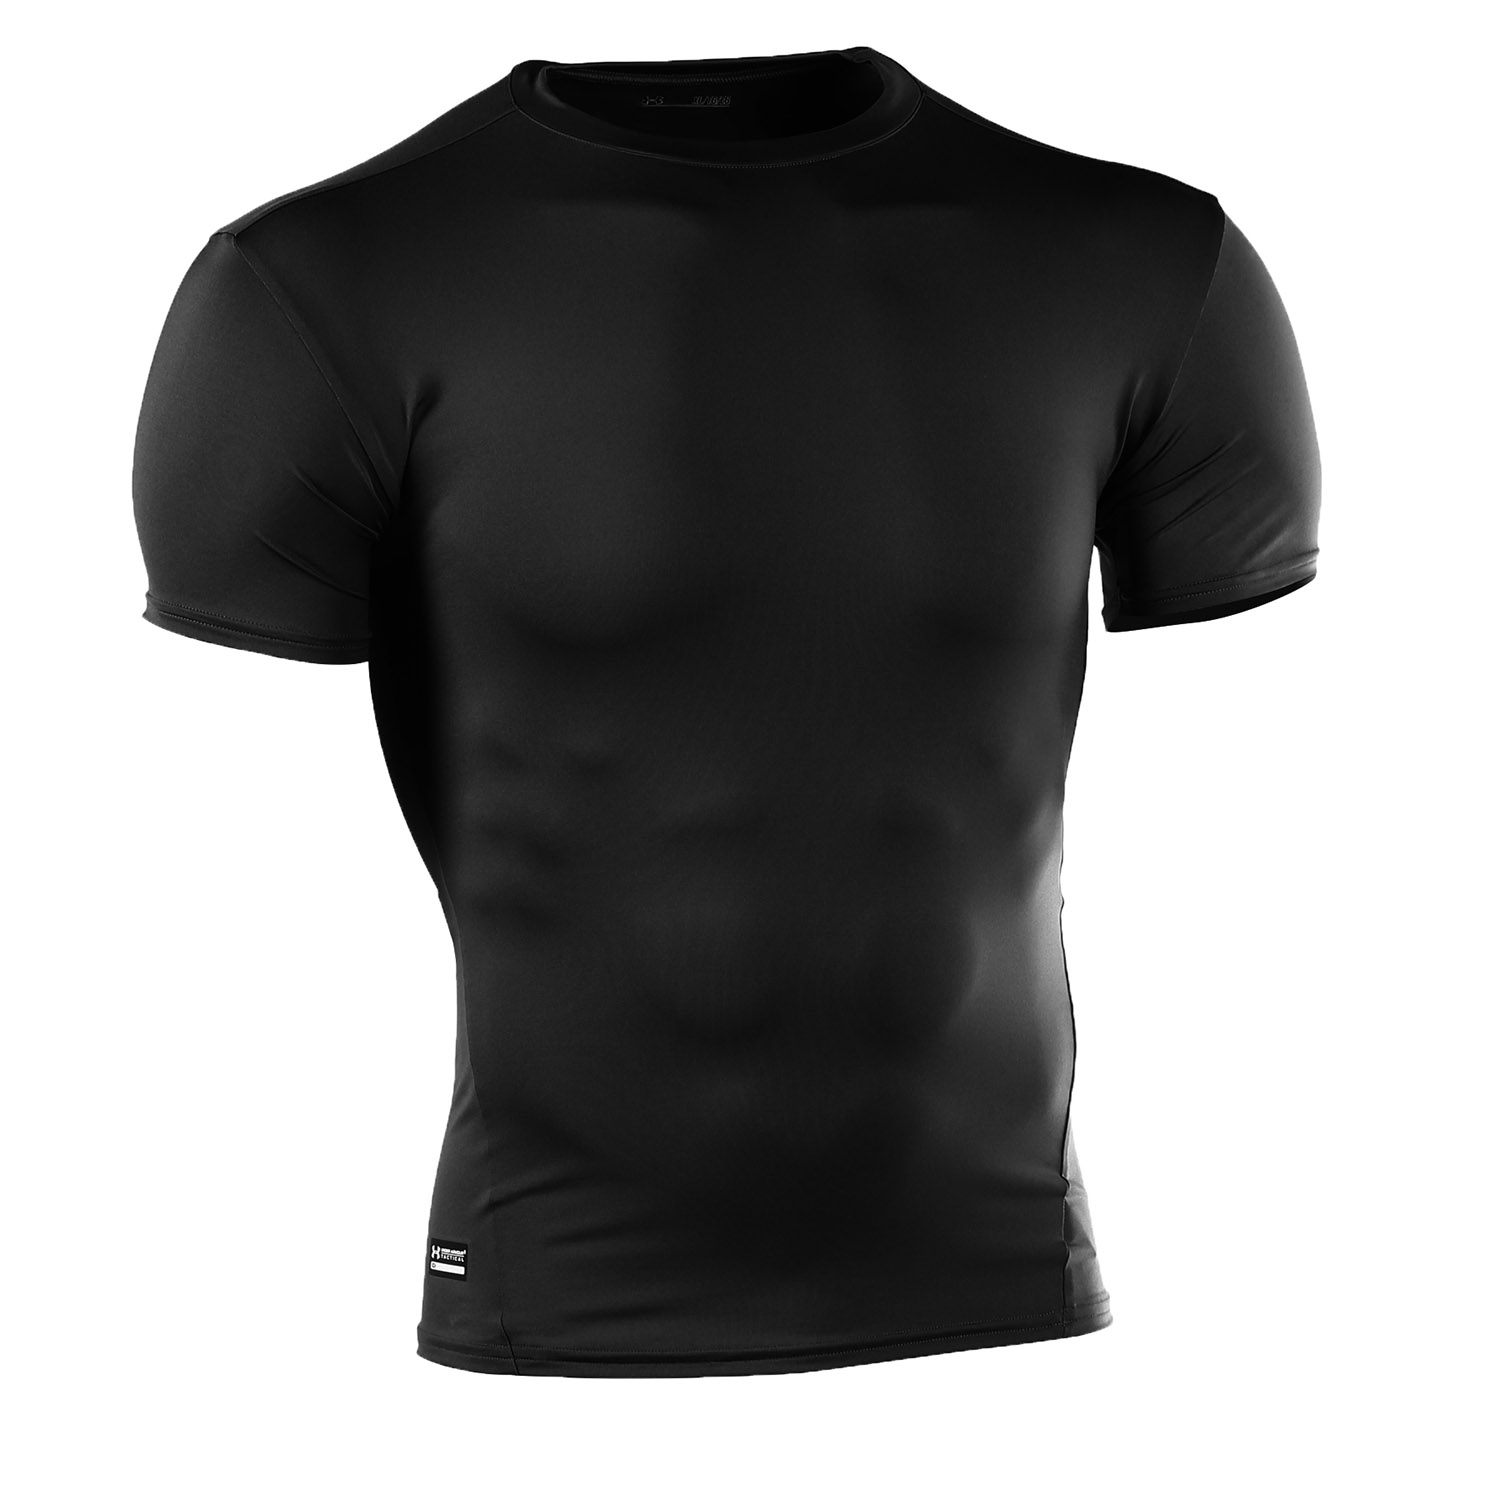 f7546ccc5 Under Armour HeatGear Compression T-Shirt for Men